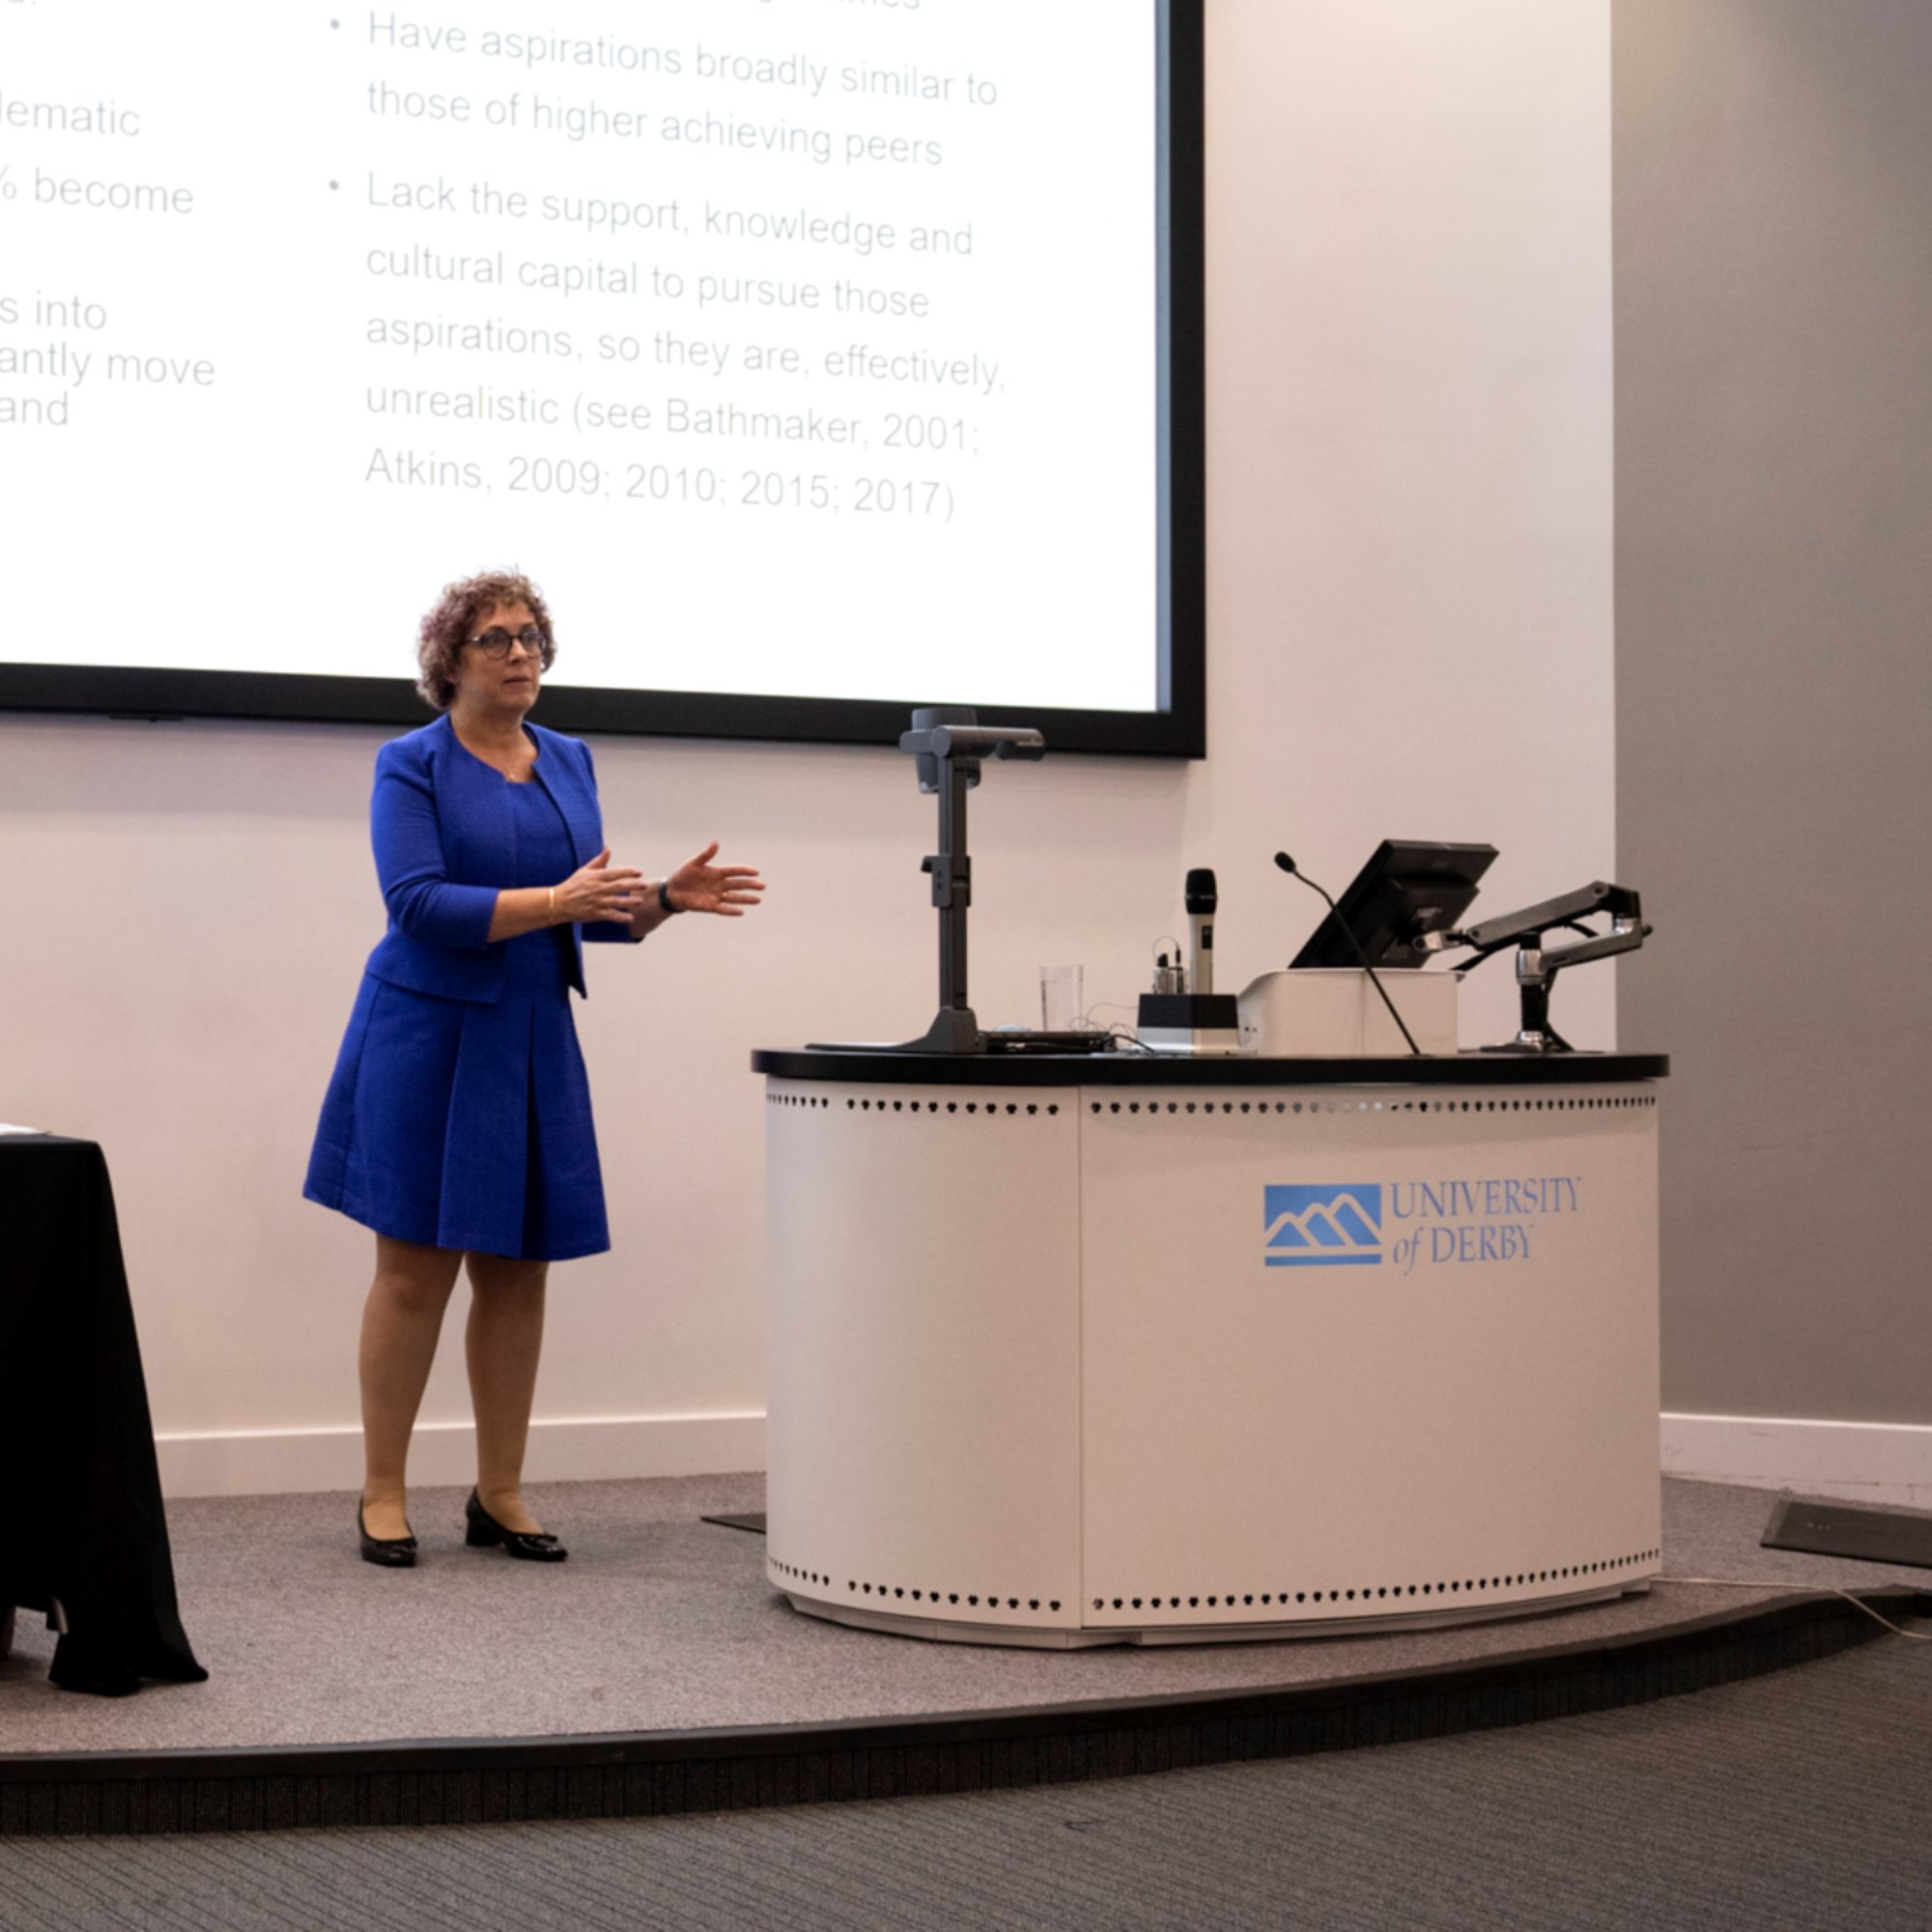 Lecture being given by Prof. Liz Atkins